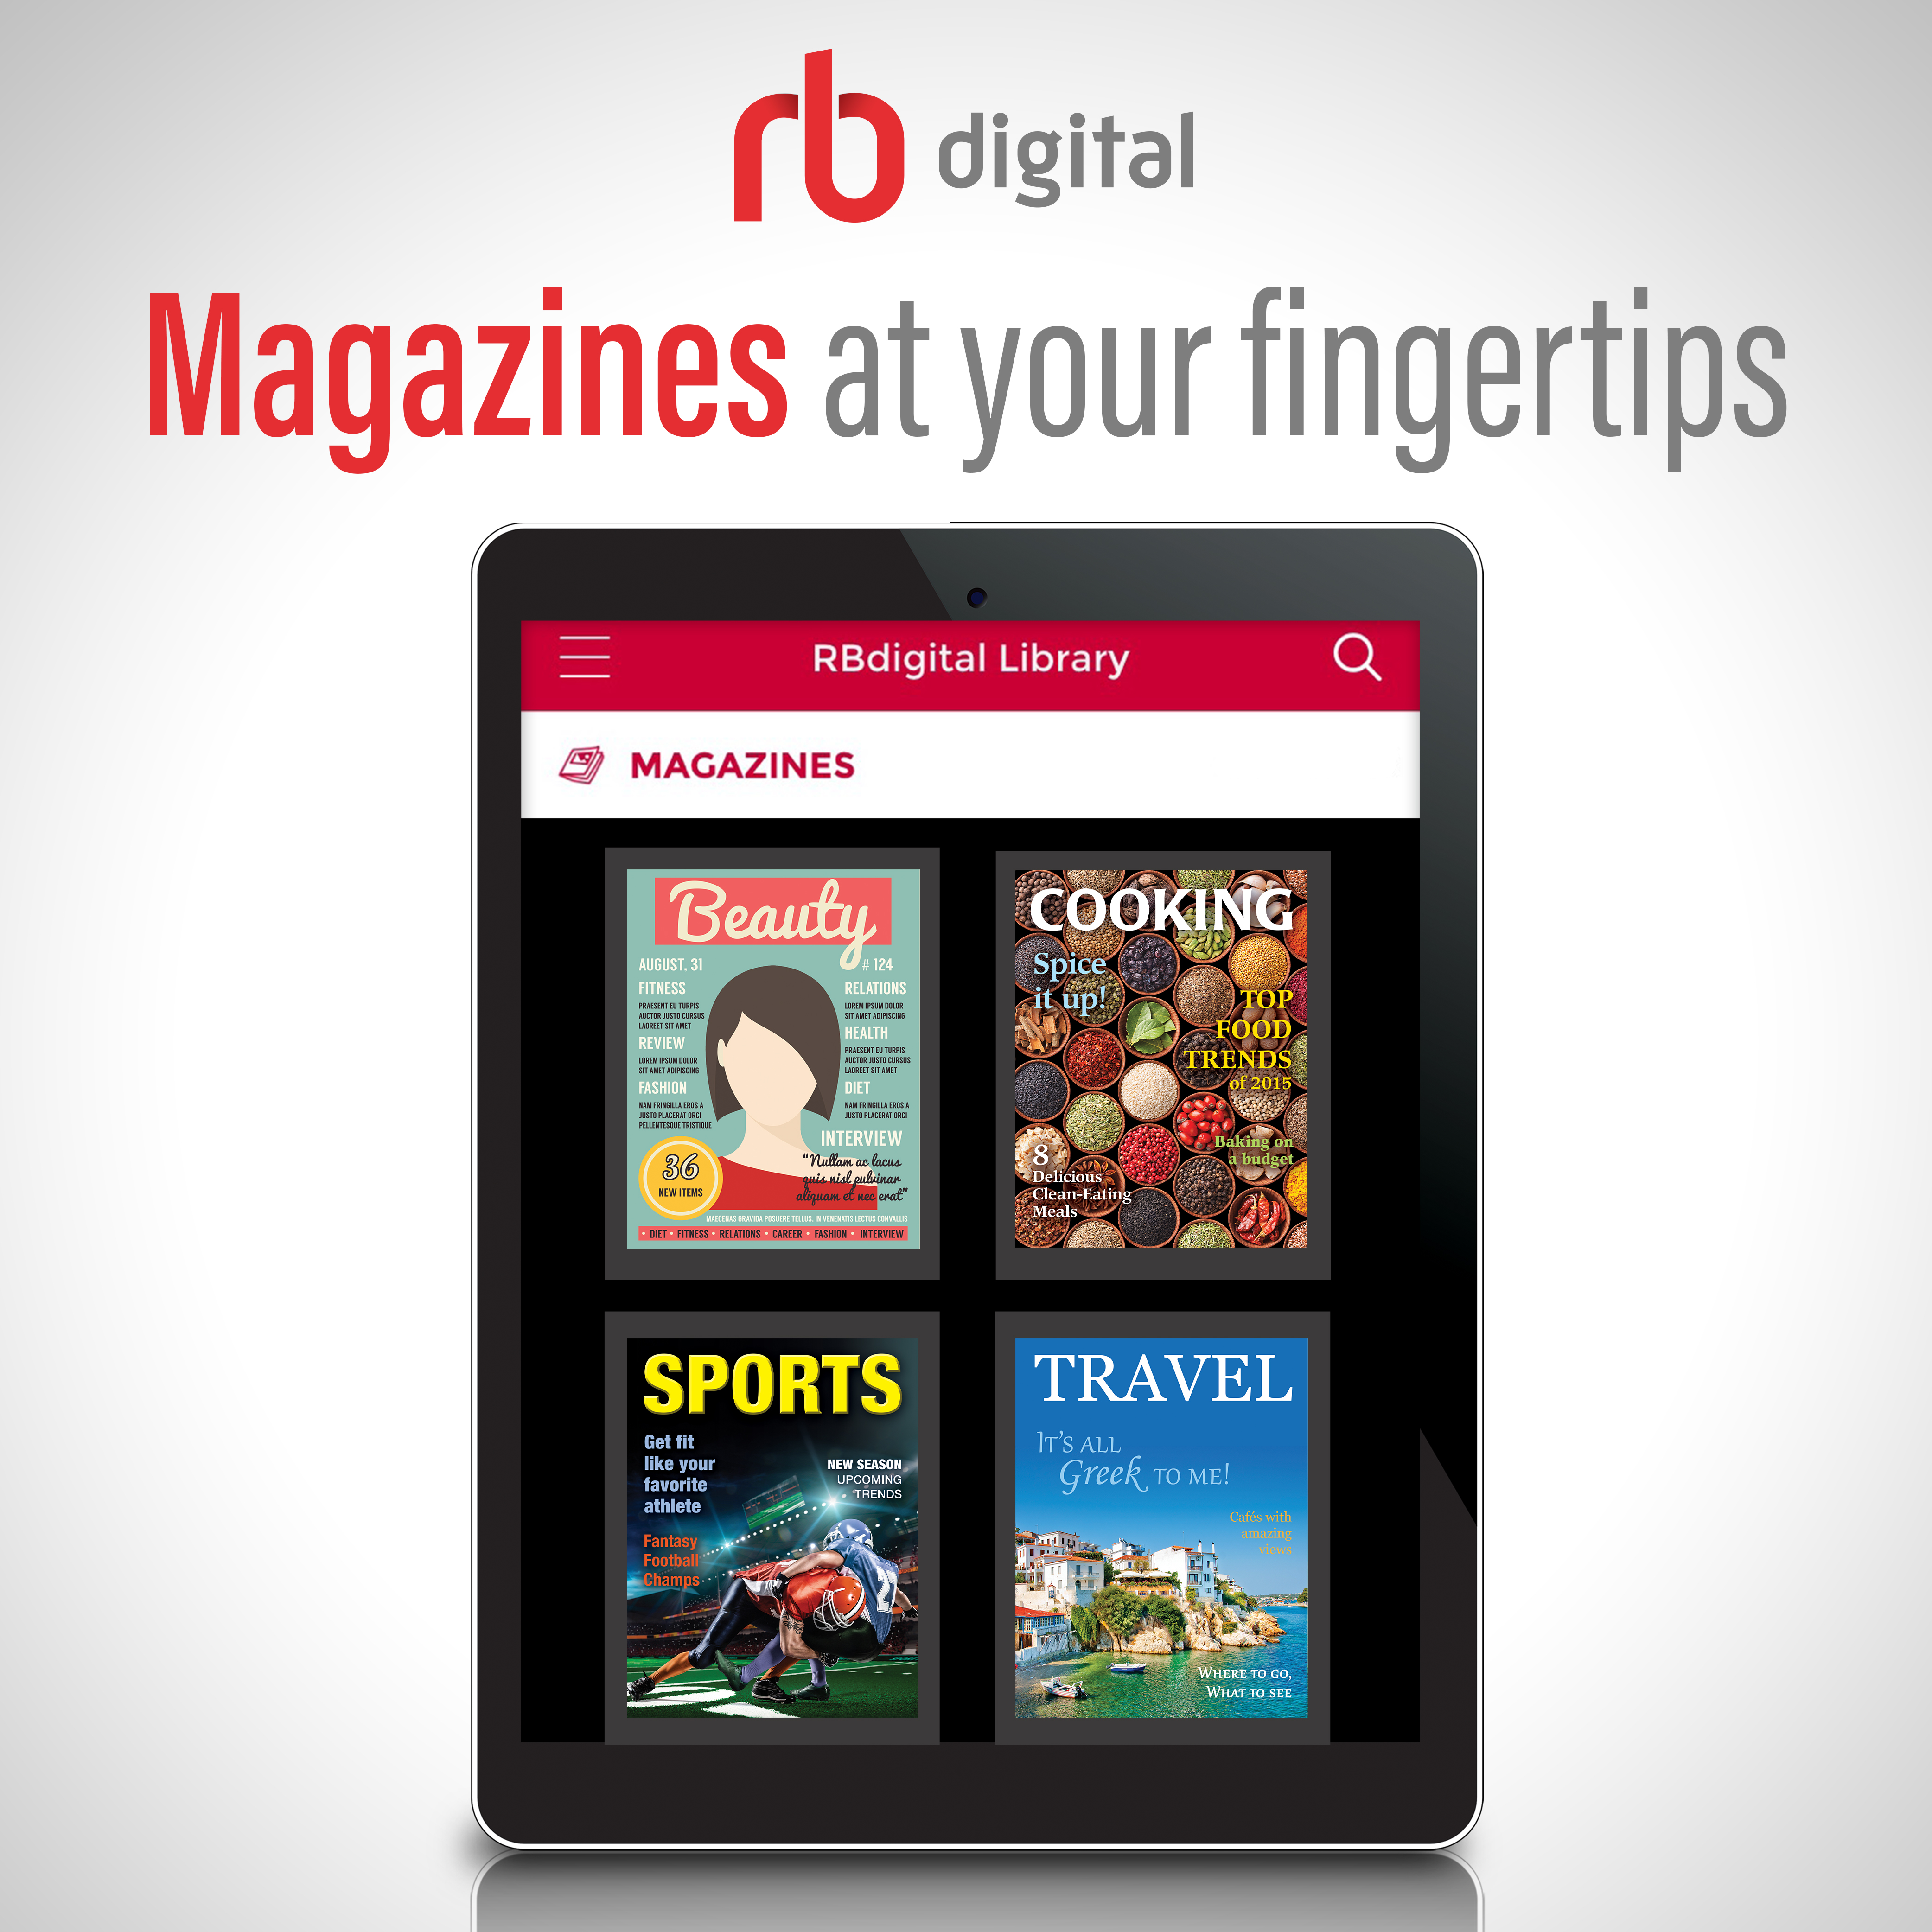 rb digital magazines